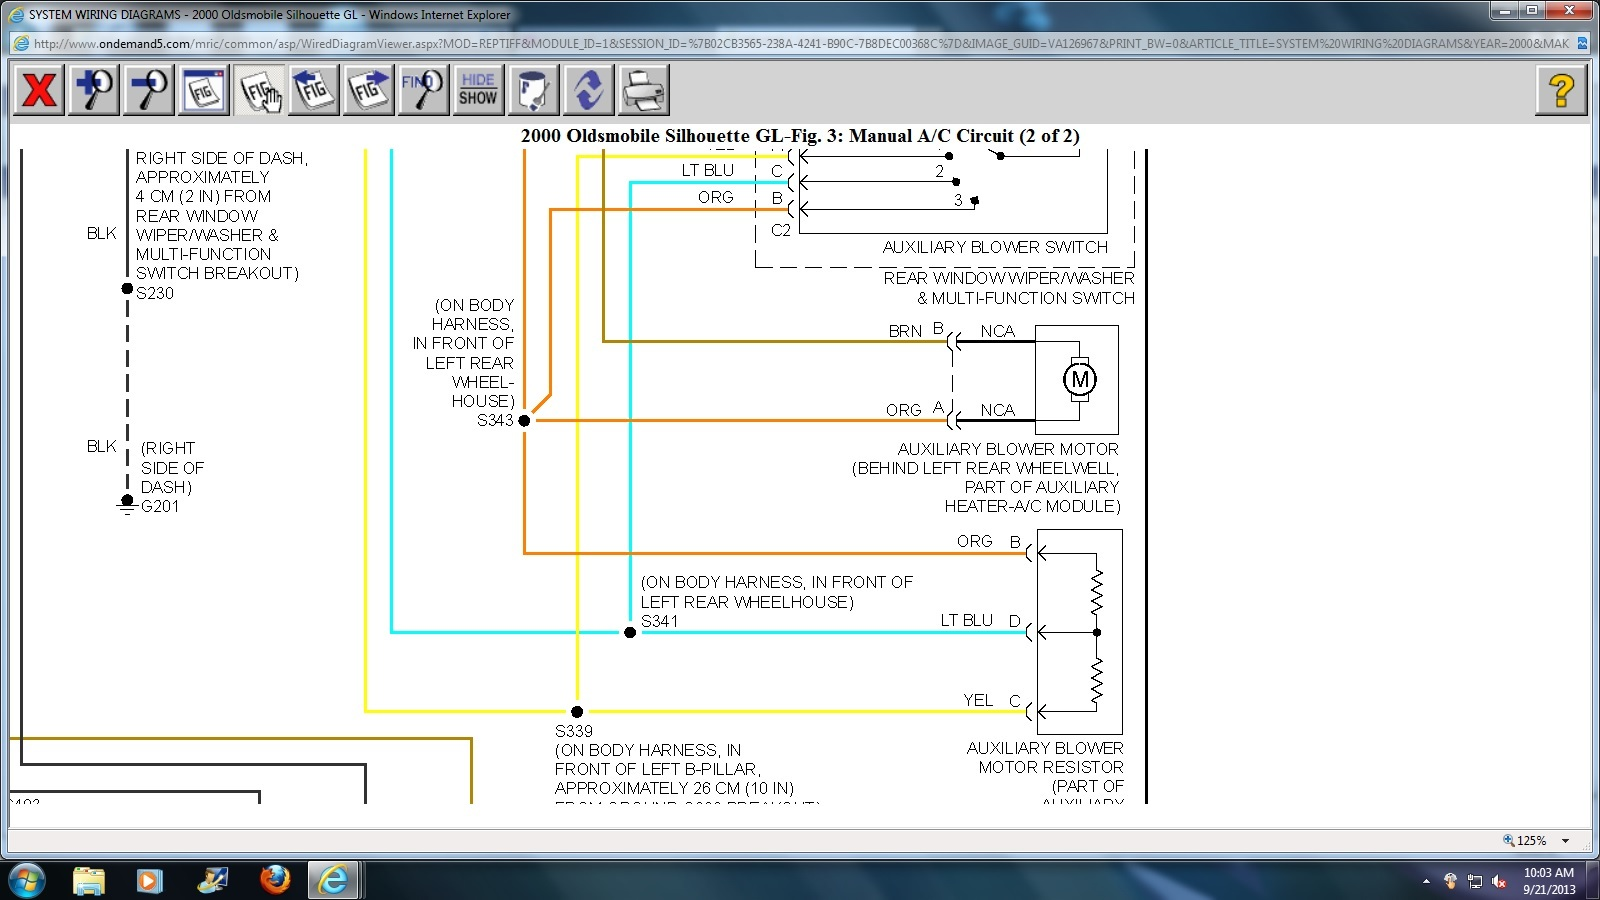 2000 Oldsmobile Silhouette Stereo Wiring Diagram,Silhouette.Free ...